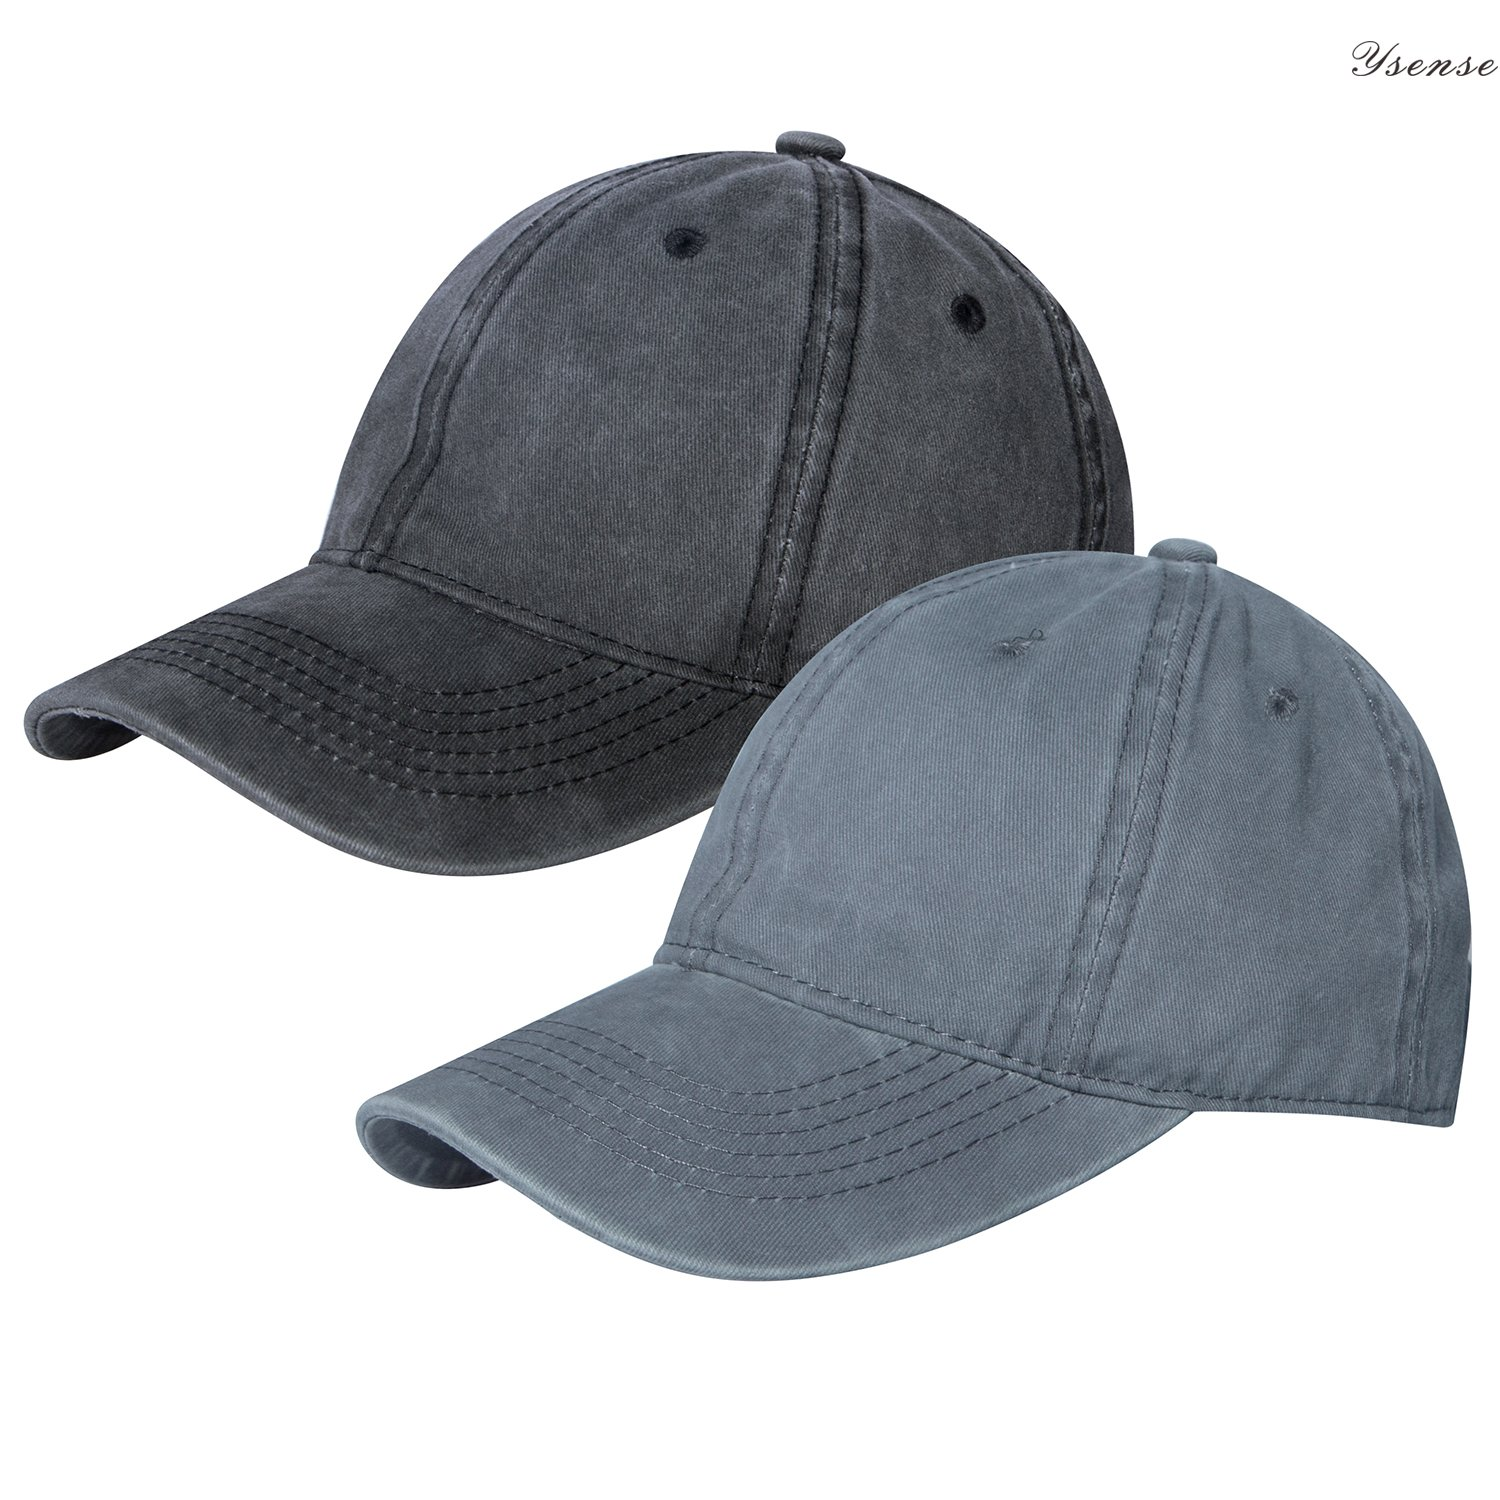 Men Women Baseball cap Cotton Adjustable Washed Dad-hat Unisex Distressed Vintage Plain cap